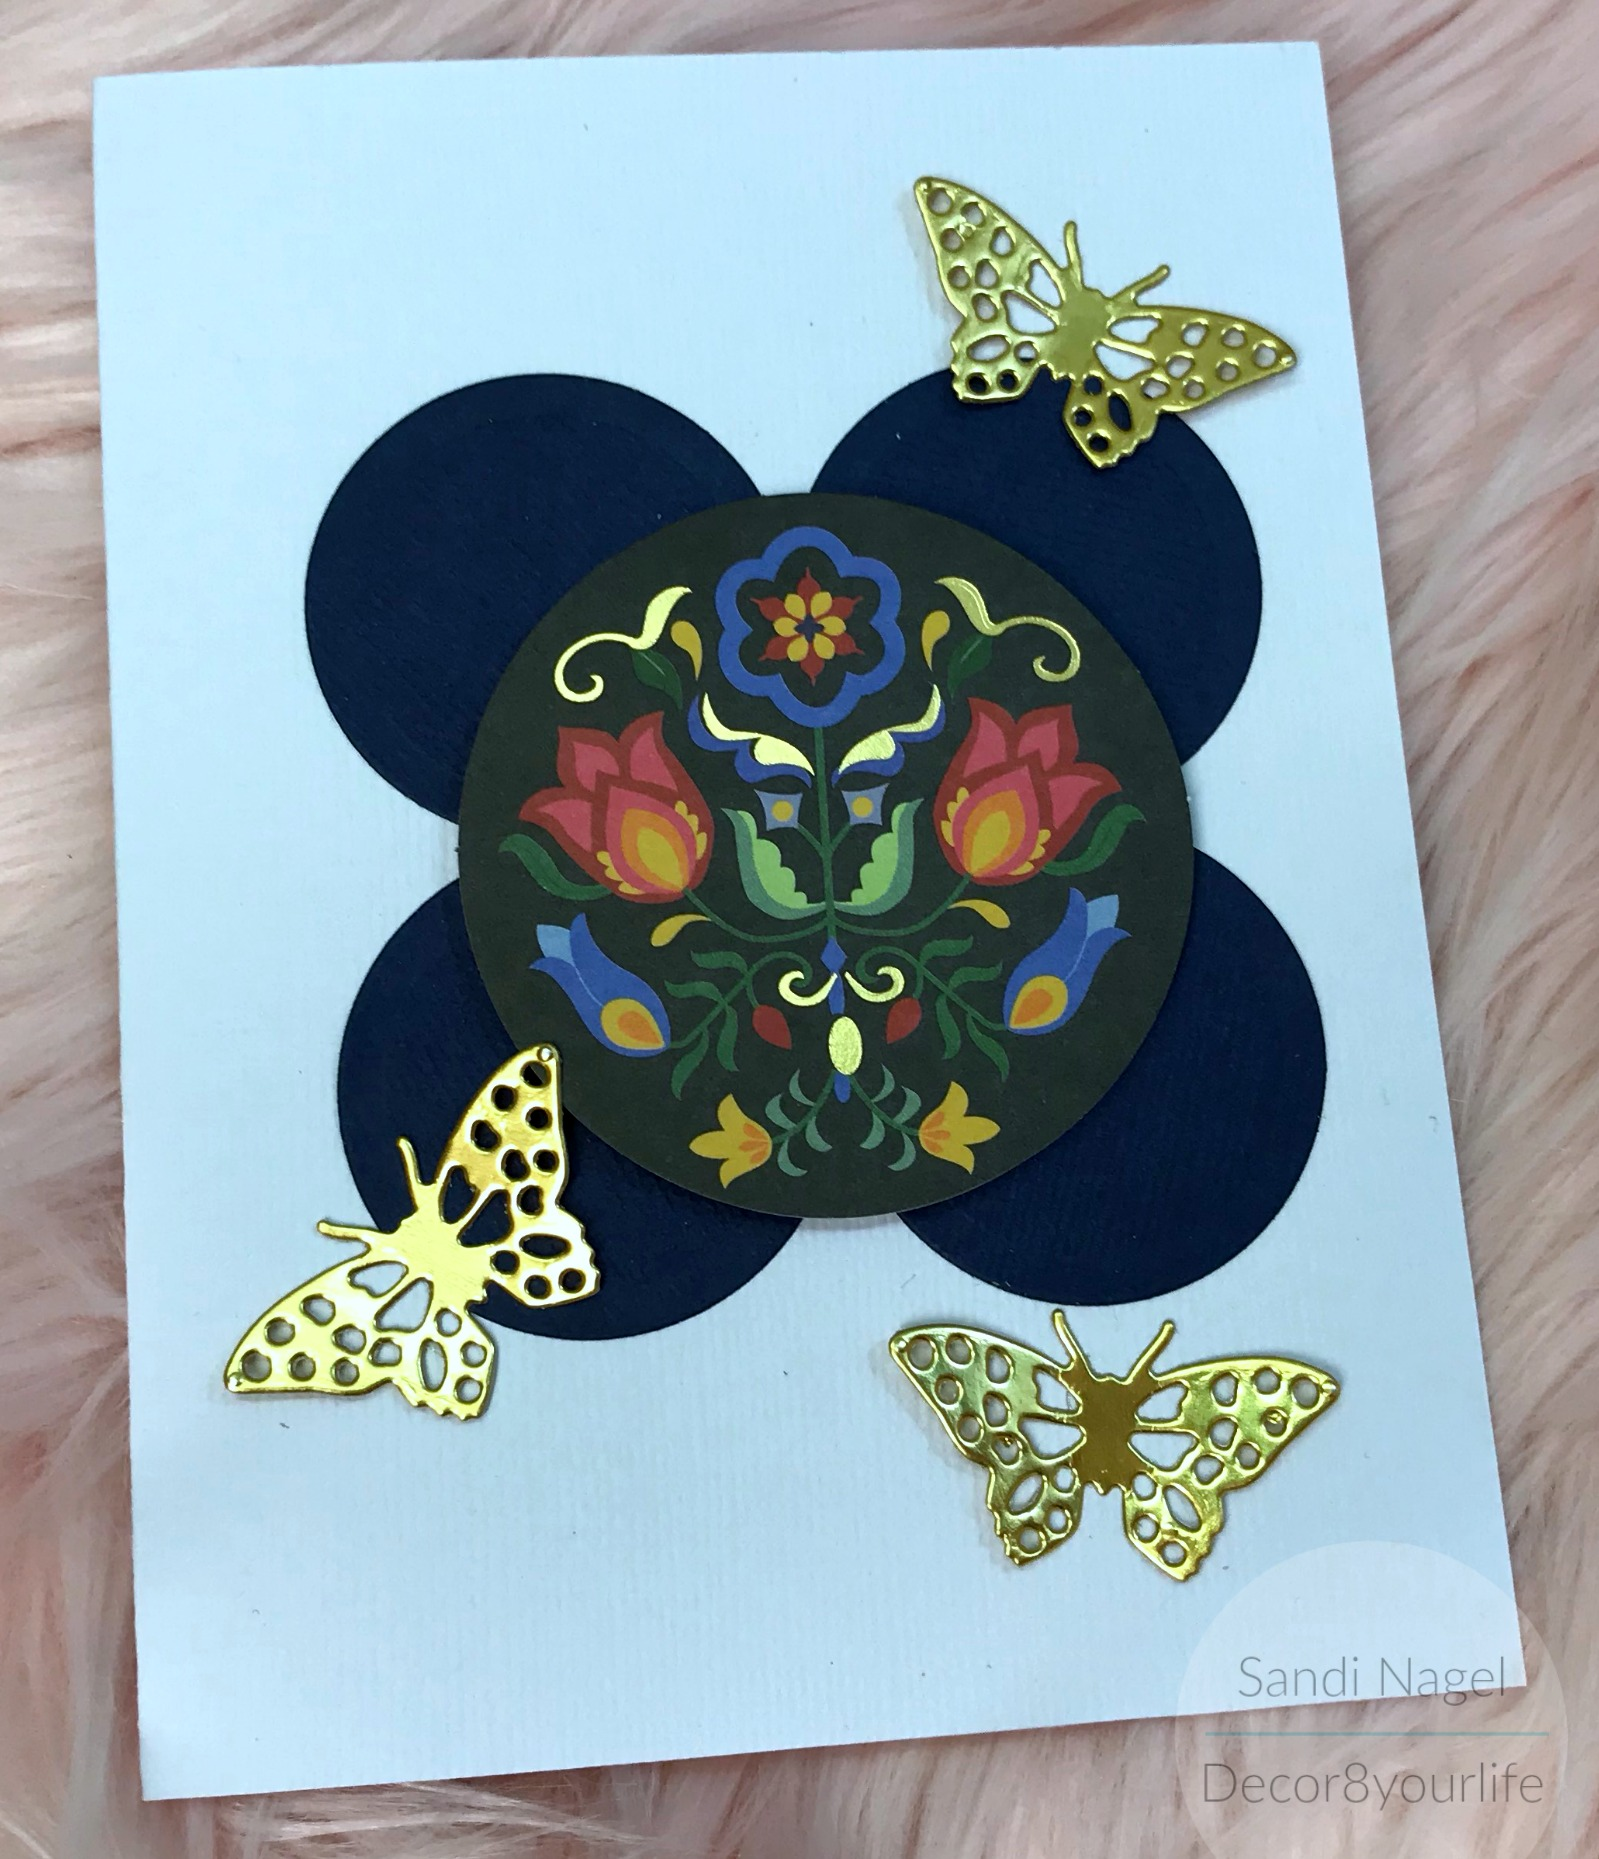 http://www.decor8yourlife.com/wp-content/uploads/2018/04/spellbinders-may-2018-card-kit-11.jpg